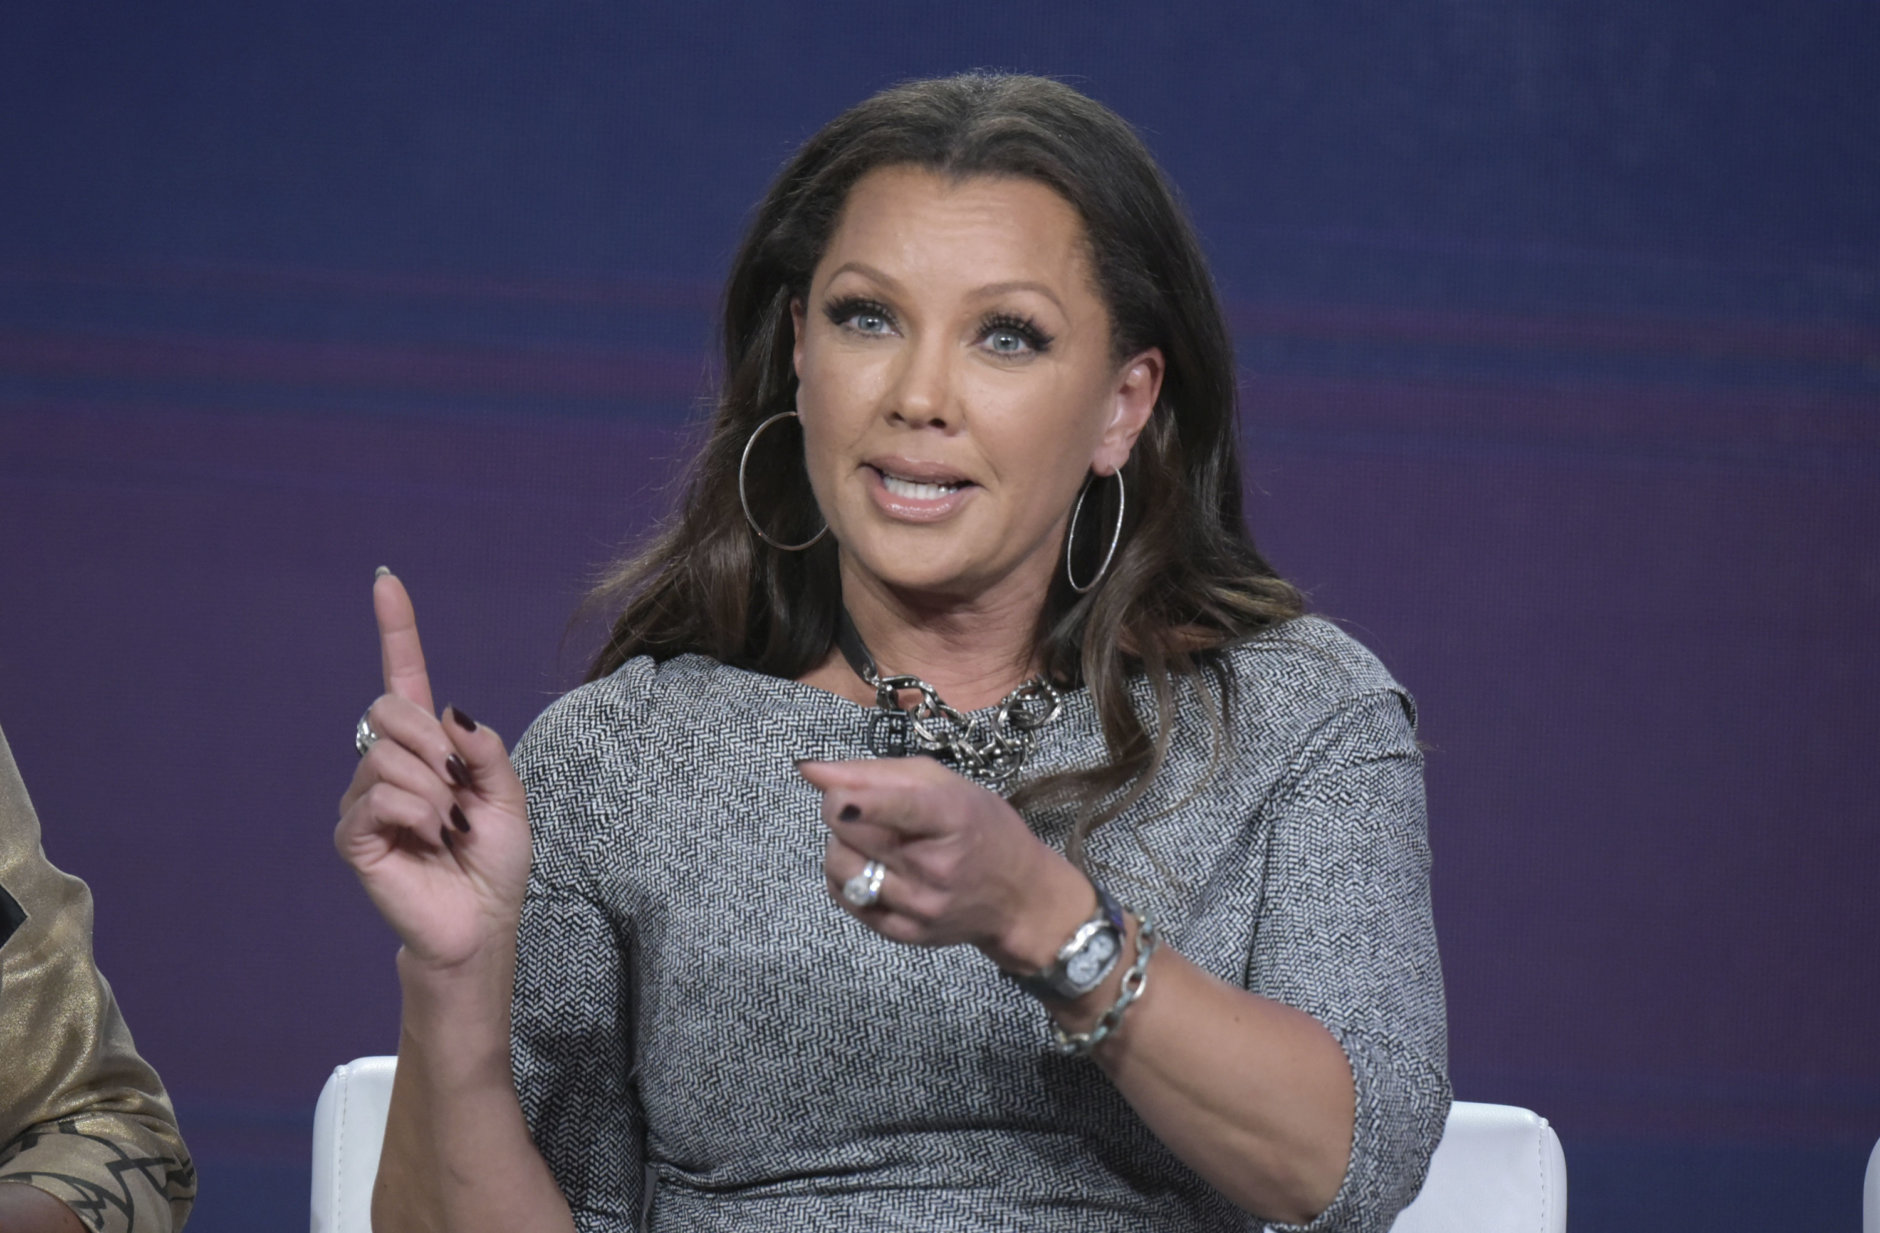 """Vanessa Williams attends the """"Daytime Divas"""" panel at Viacom's VH1 portion of the Winter Television Critics Association press tour on Friday, Jan. 13, 2017, in Pasadena, Calif. (Photo by Richard Shotwell/Invision/AP)"""